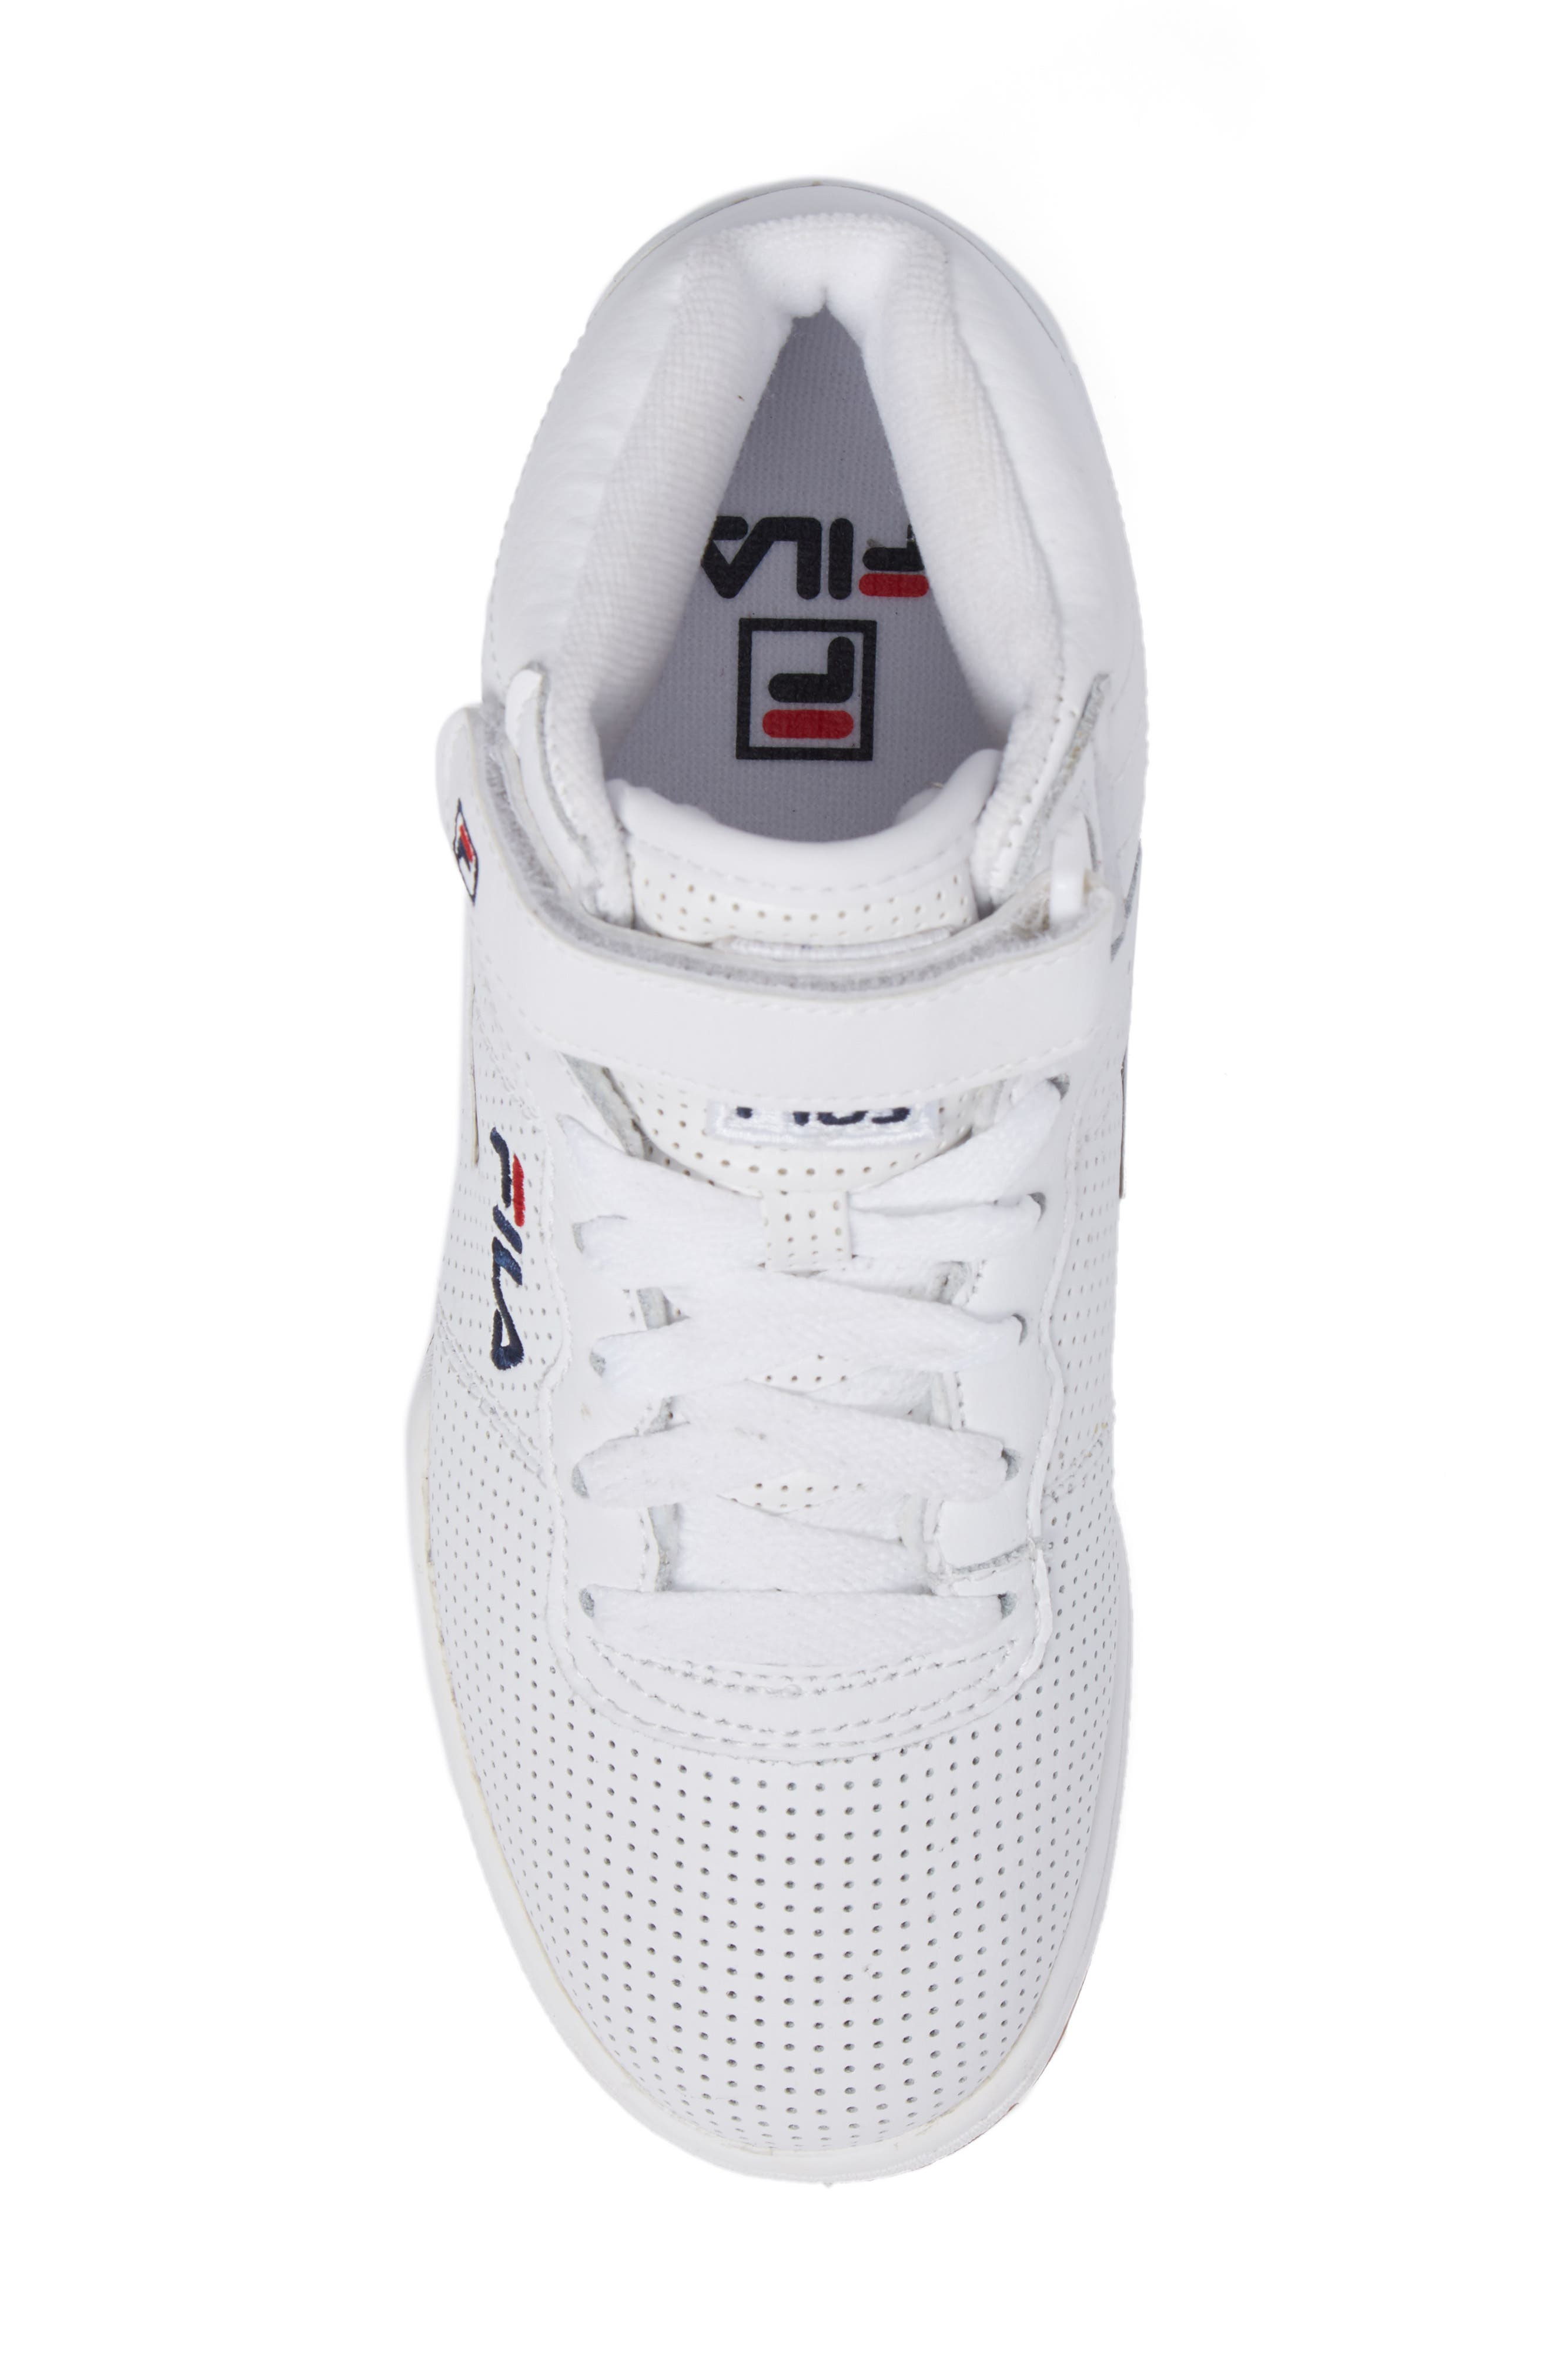 F-13 Perforated High Top Sneaker,                             Alternate thumbnail 5, color,                             150